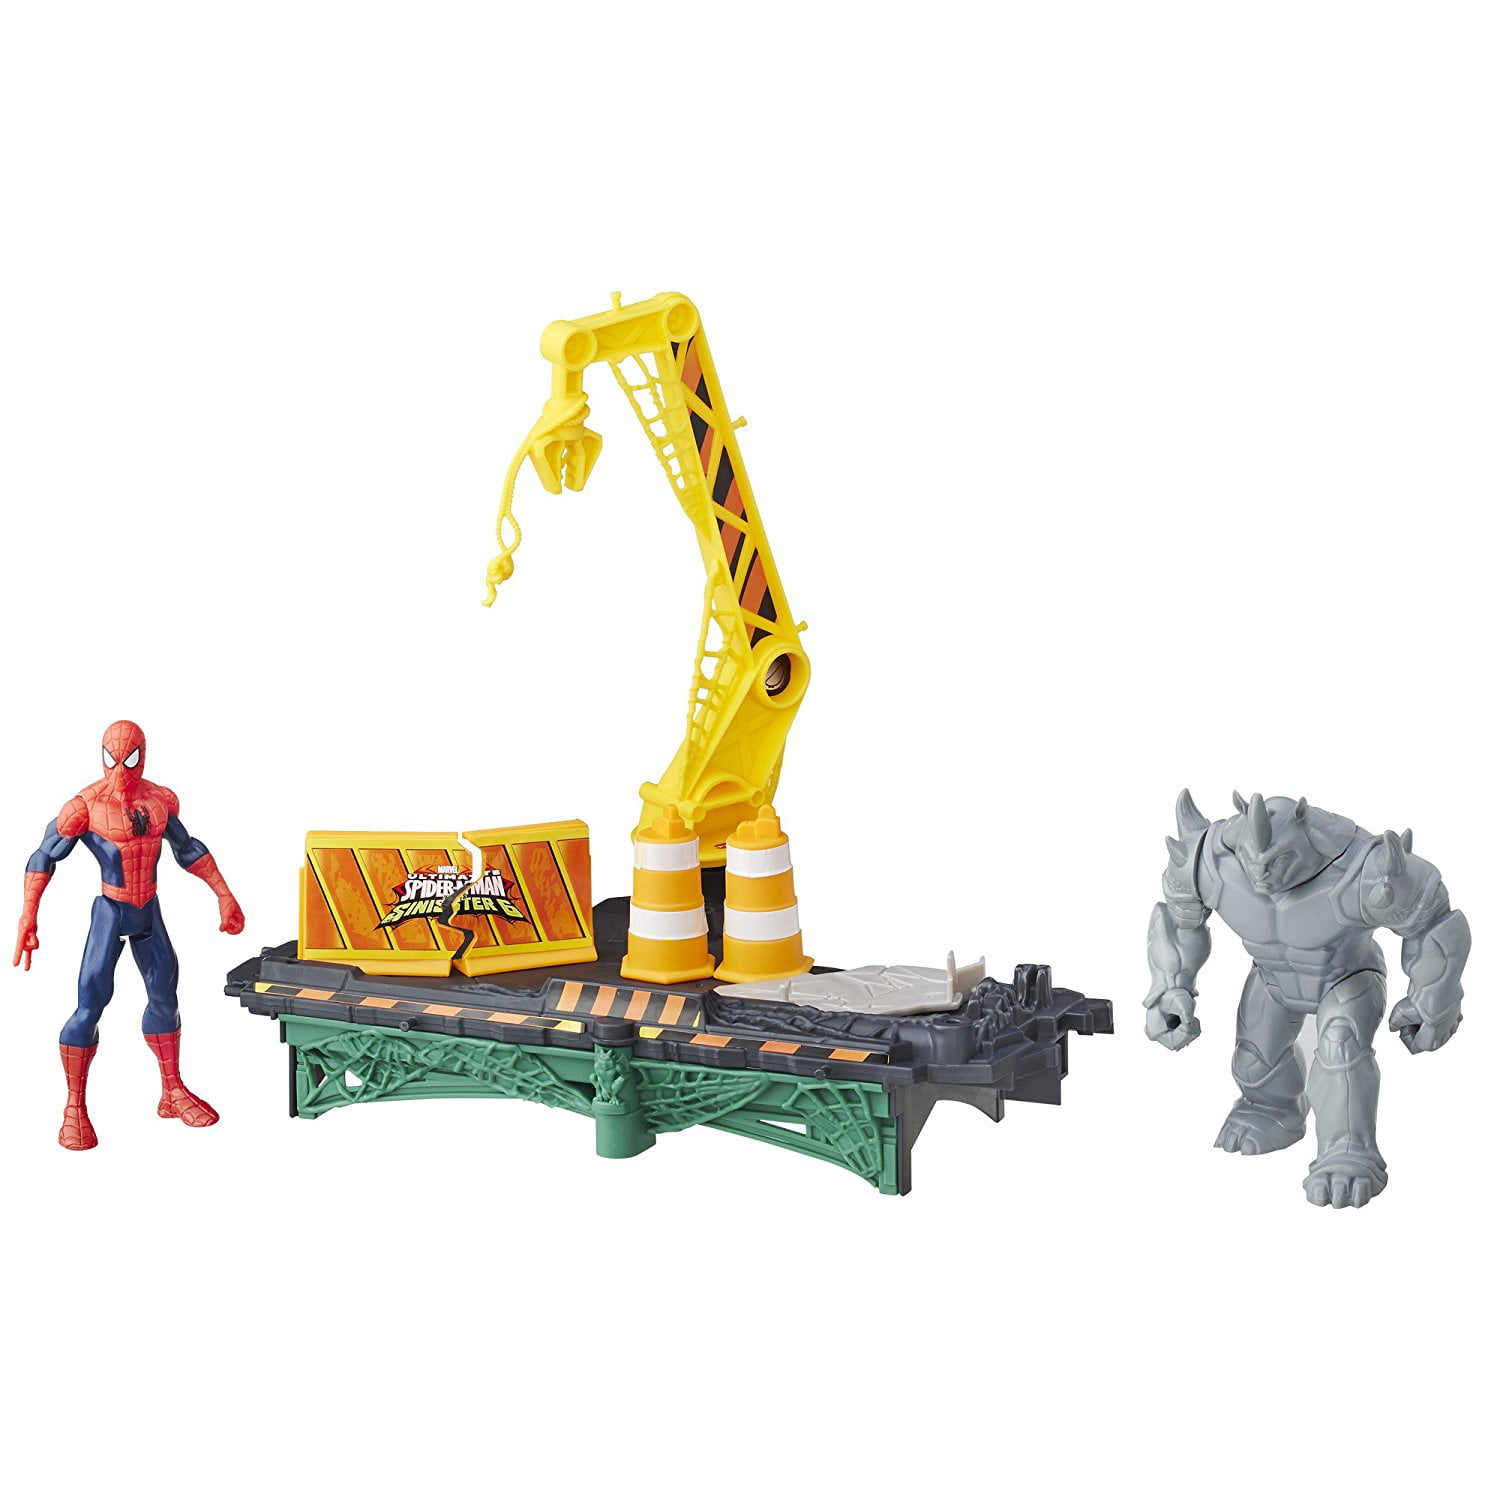 Marvel Spider-Man Rhino Rampage Play Set - Walmart.com